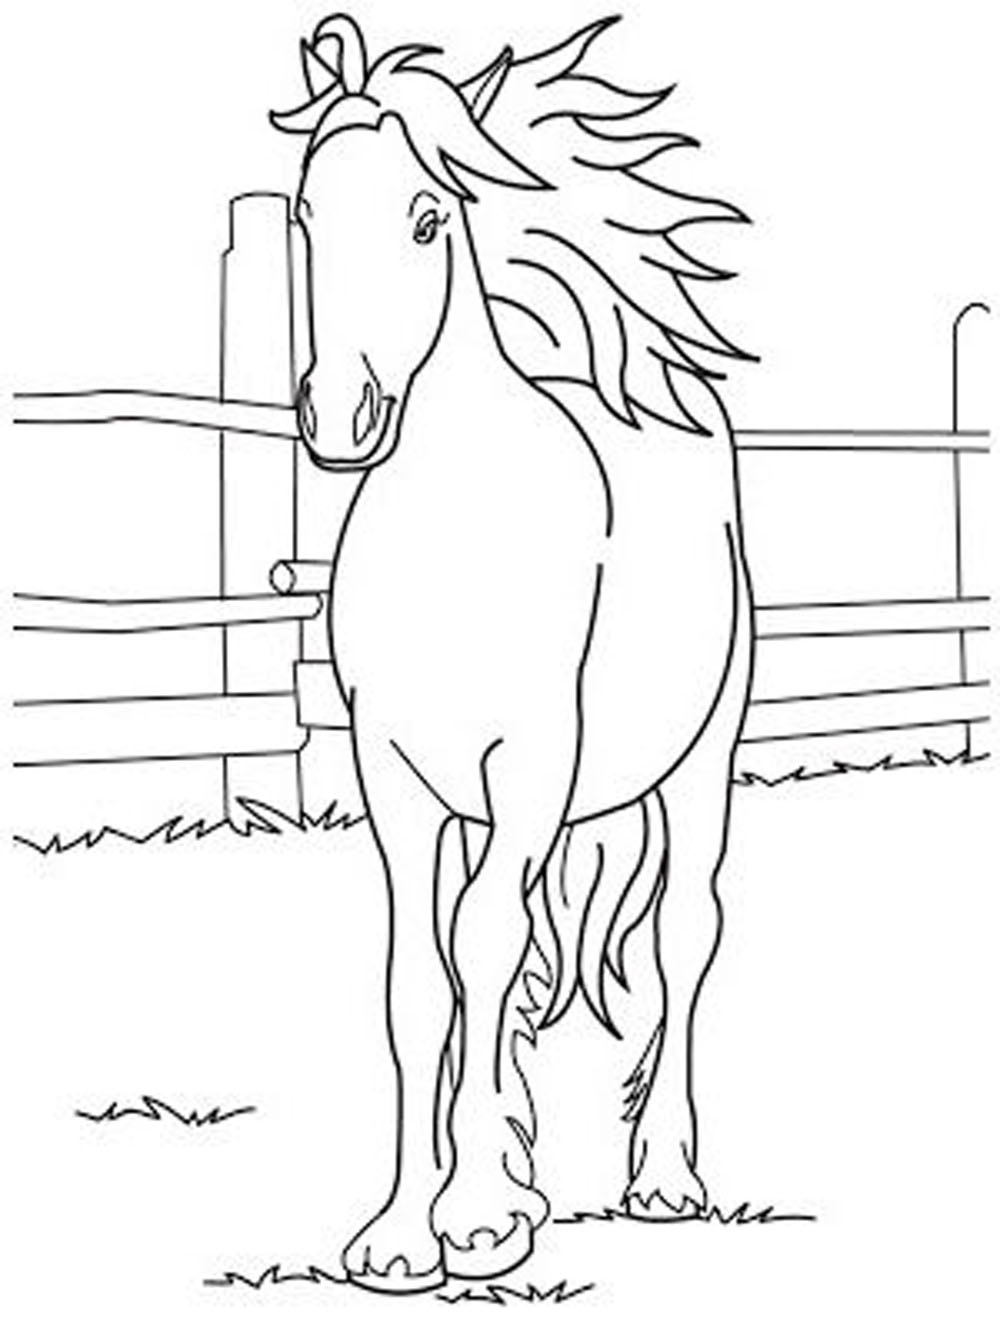 horse coloring sheets 30 printable horse coloring pages sheets horse coloring